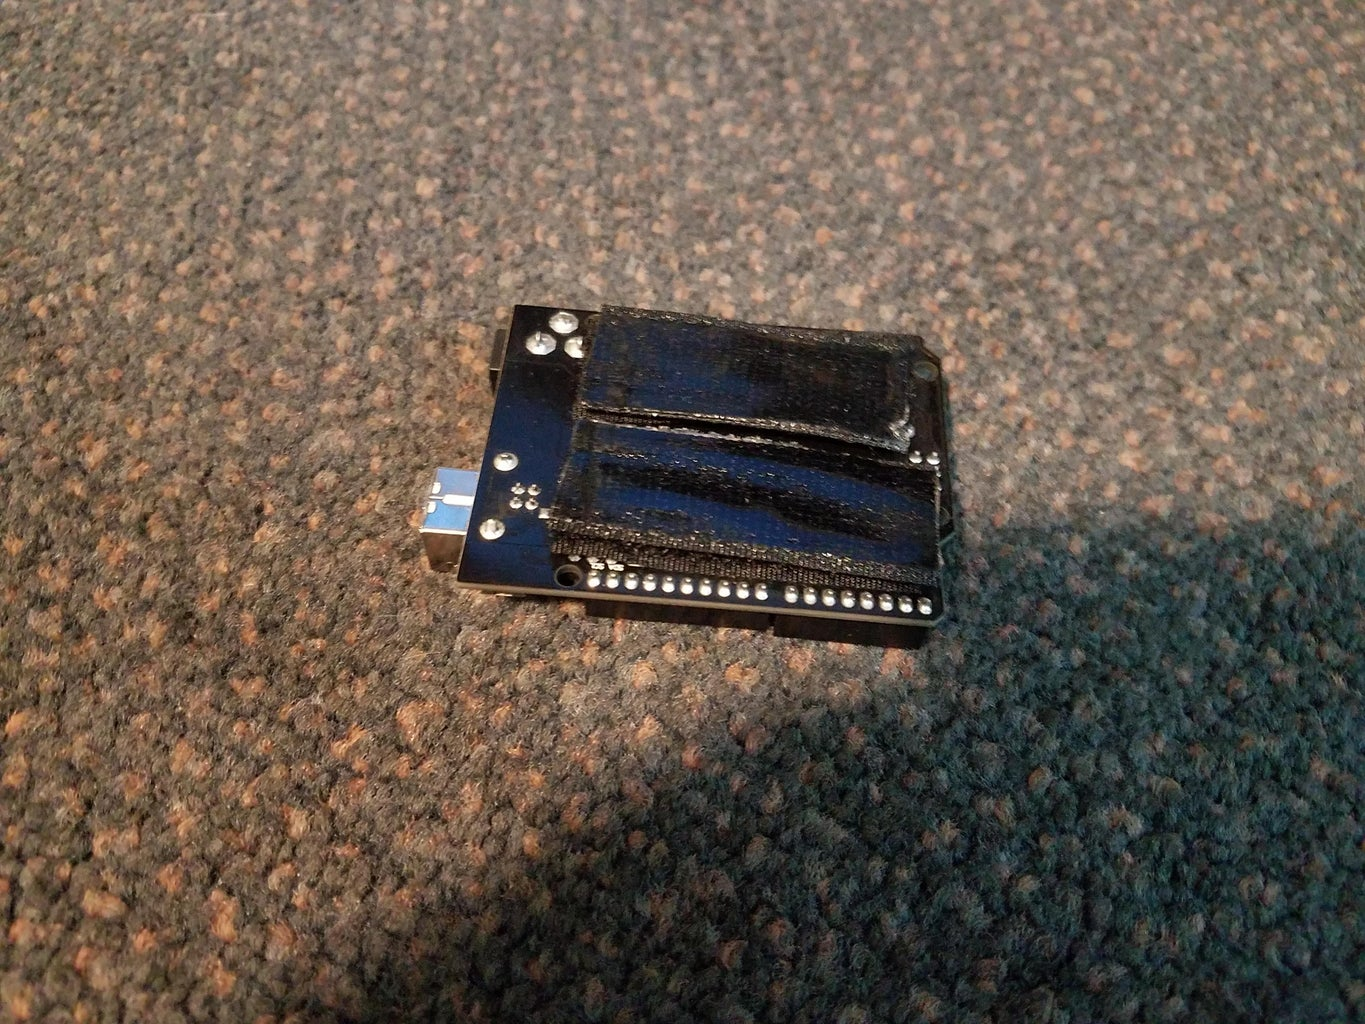 Mounting the Arduino